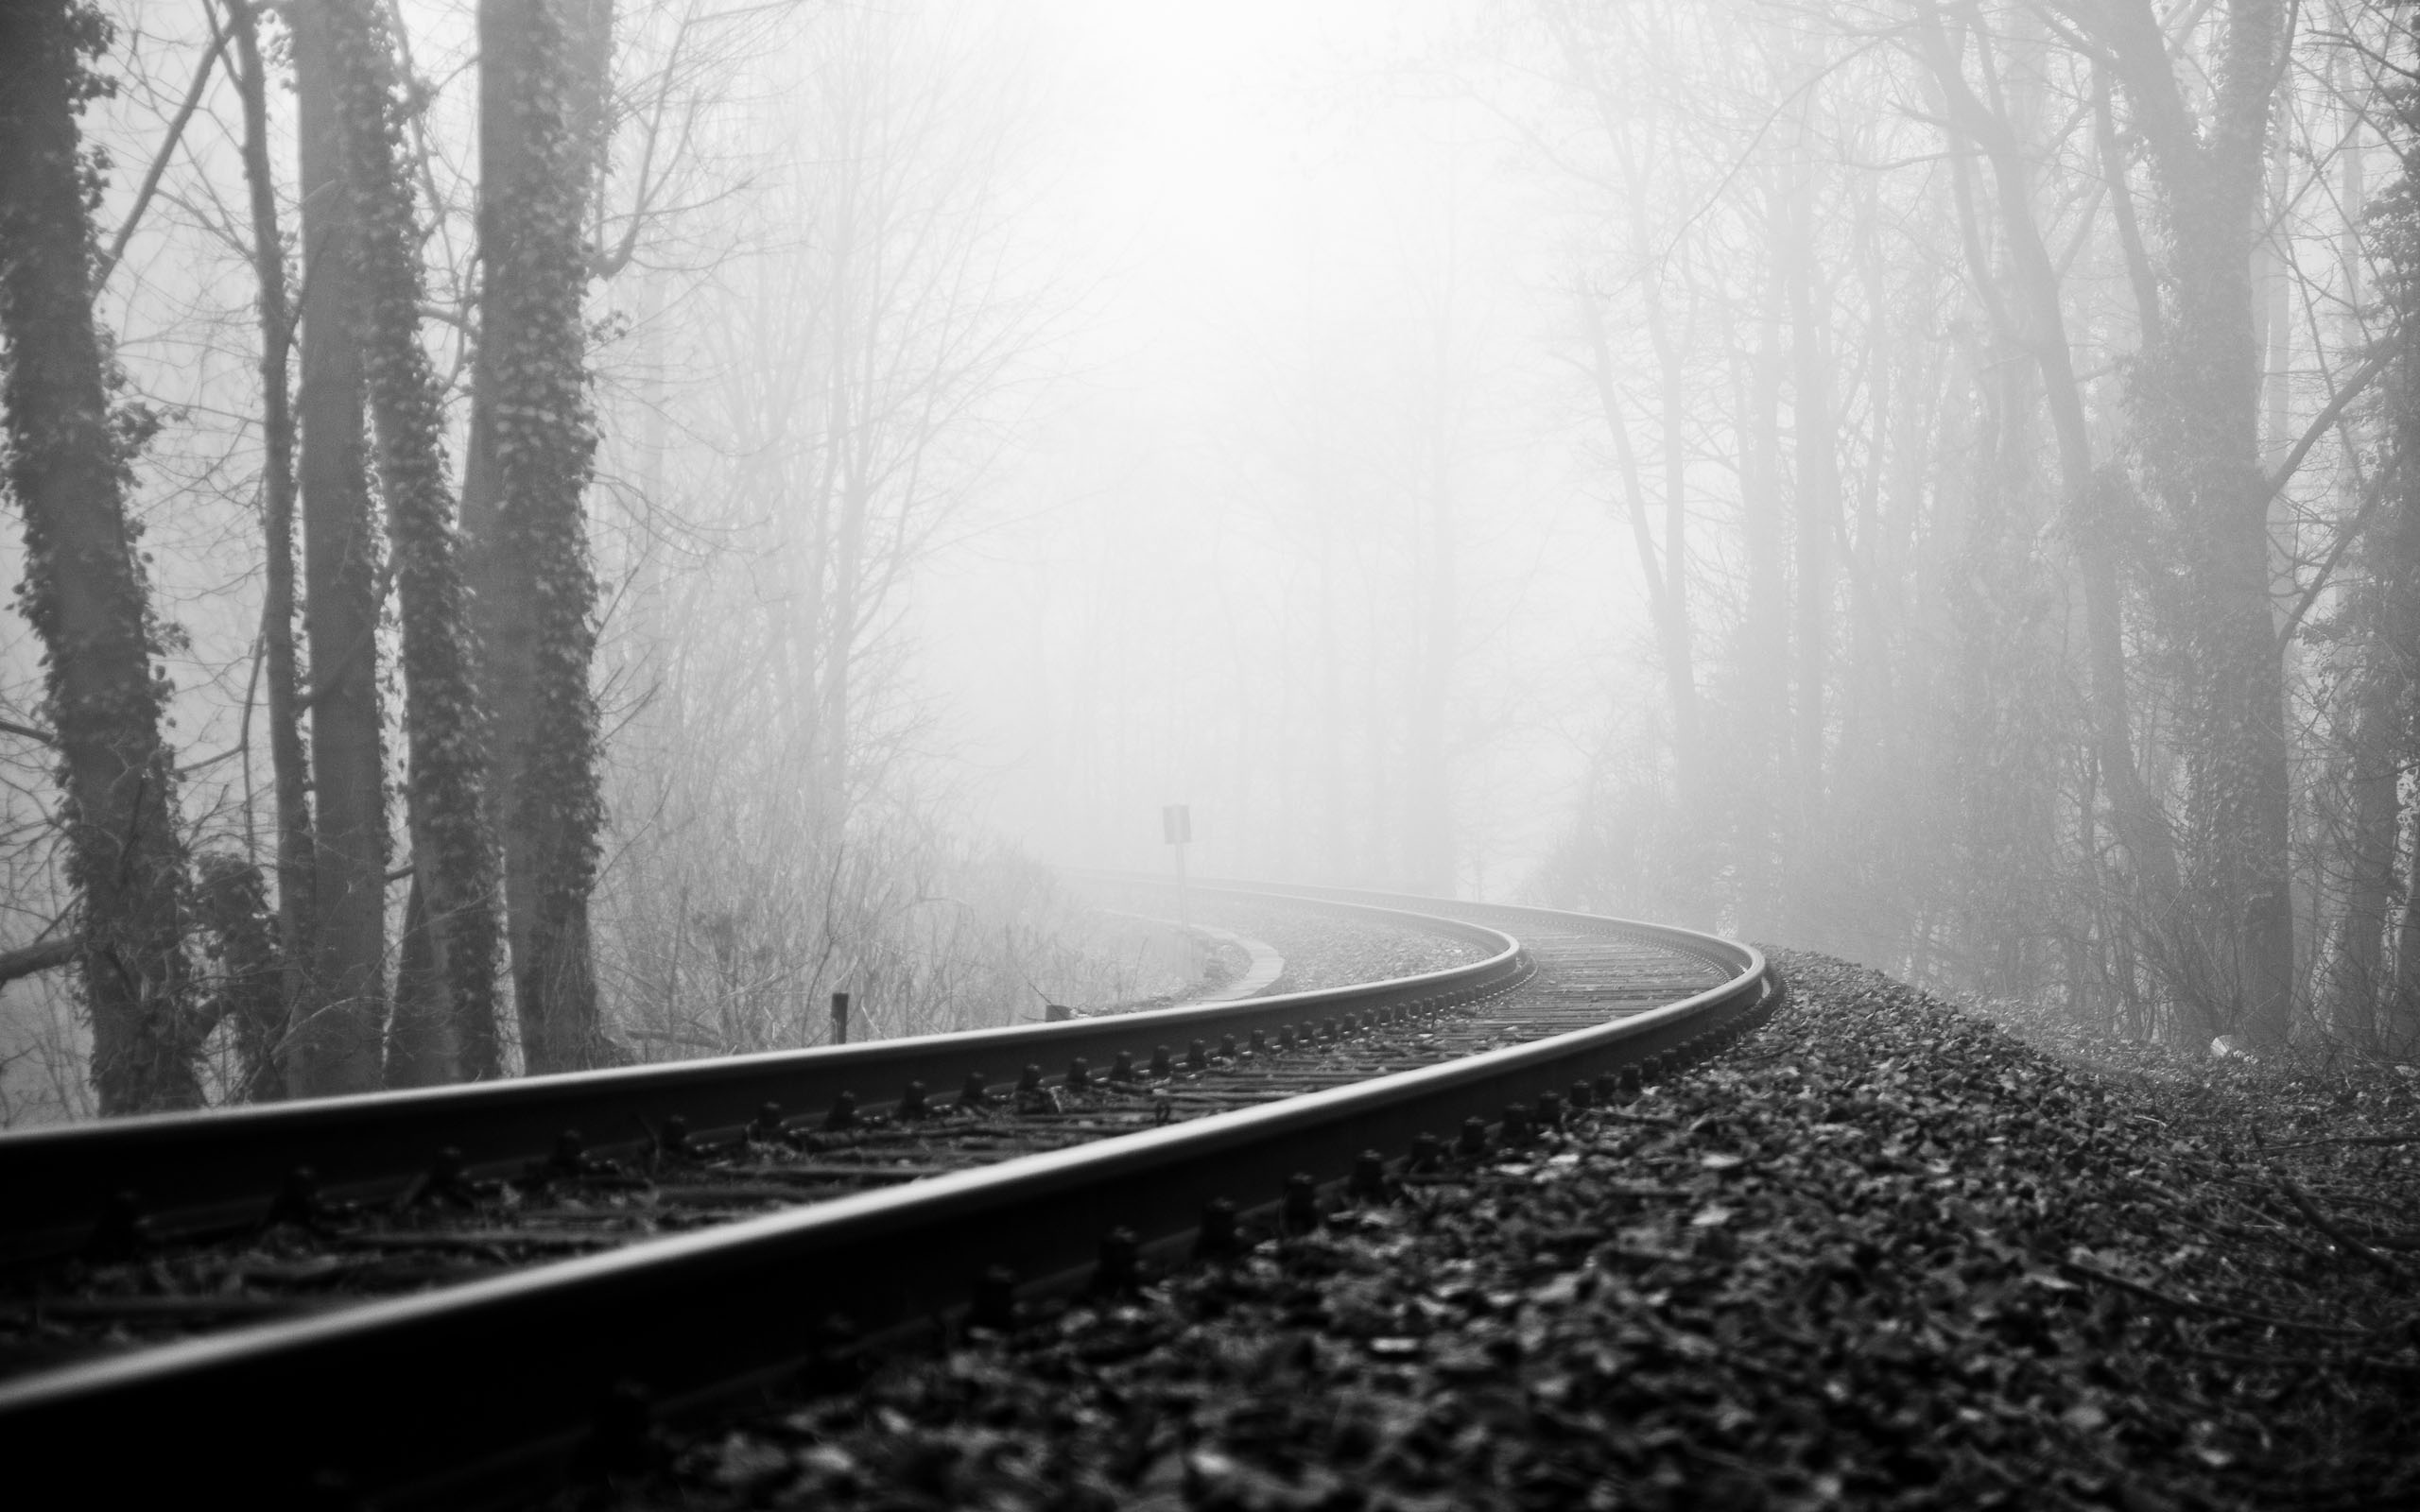 198 railroad hd wallpapers | backgrounds - wallpaper abyss